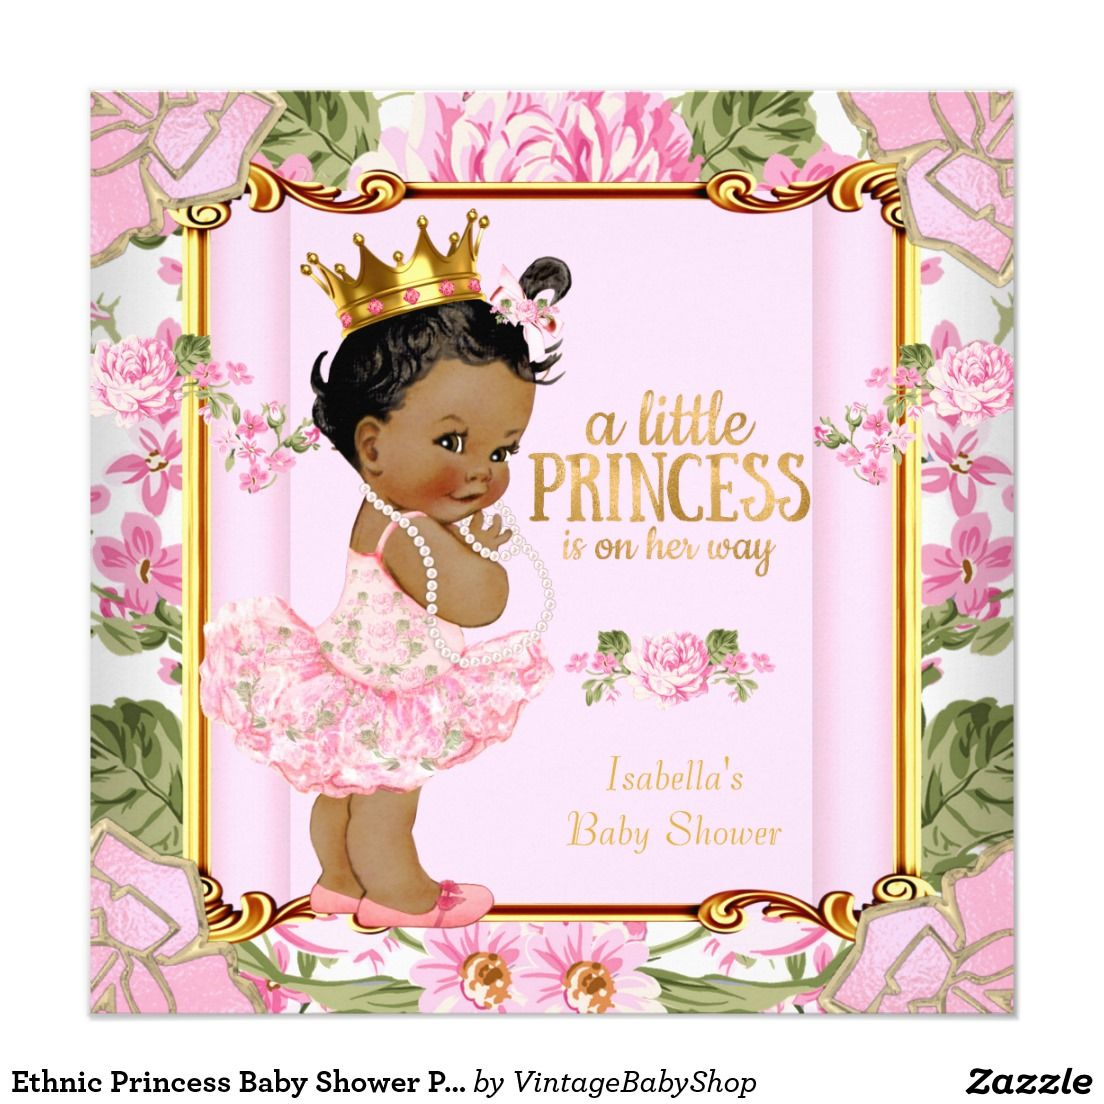 Ethnic Princess Baby Shower Pink Rose Floral Invitation   Baby ...